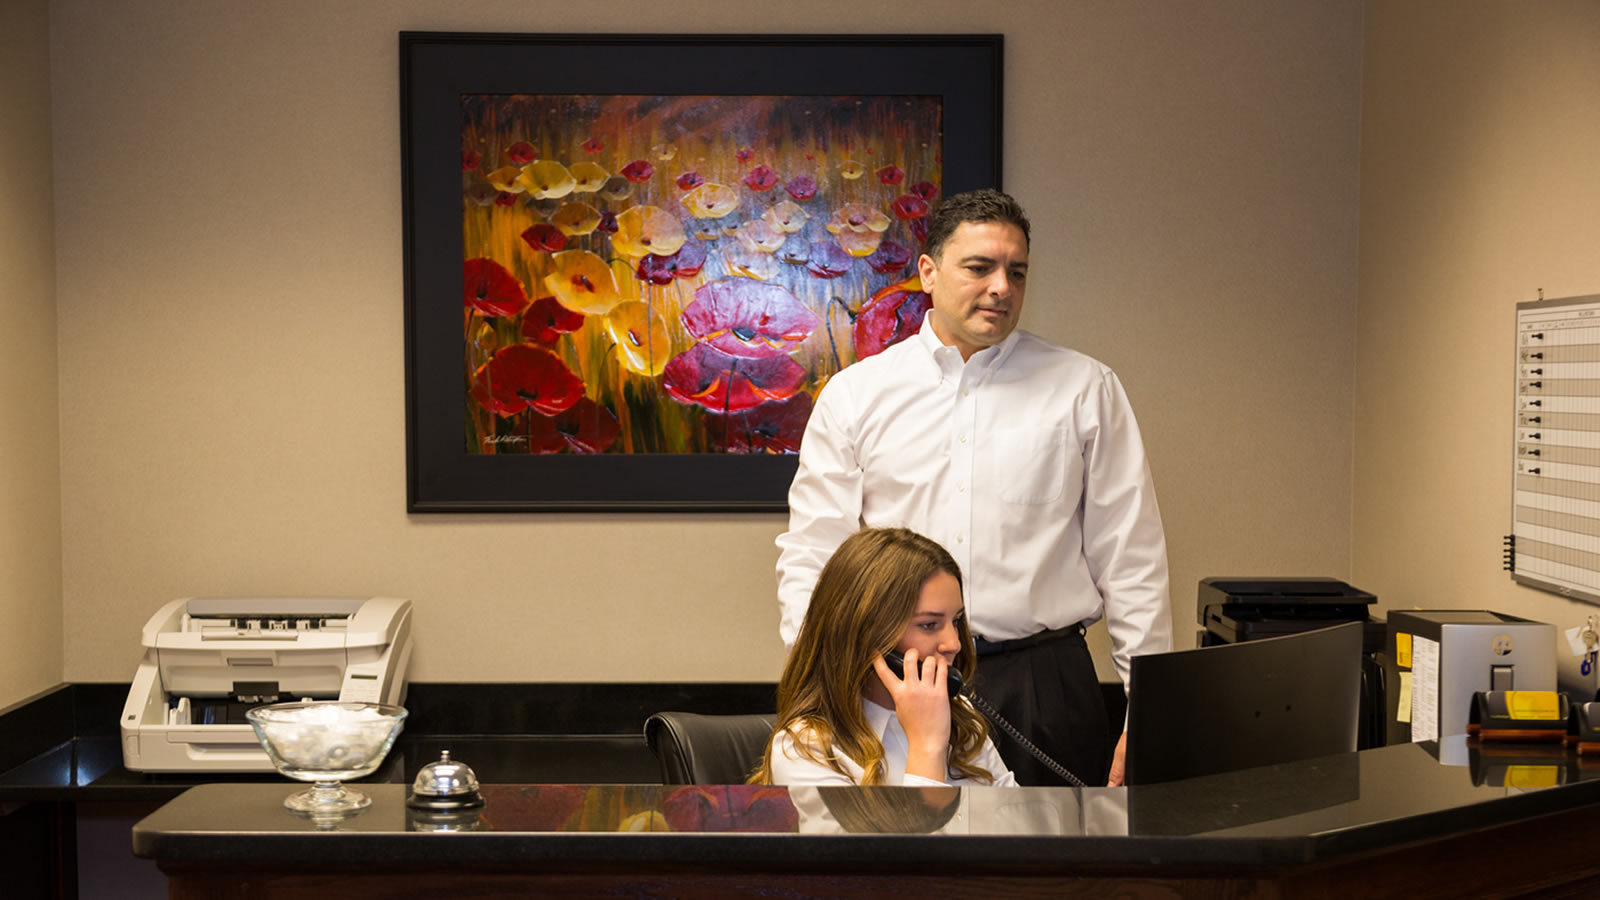 About Ohio Fire Claims Public Adjuster